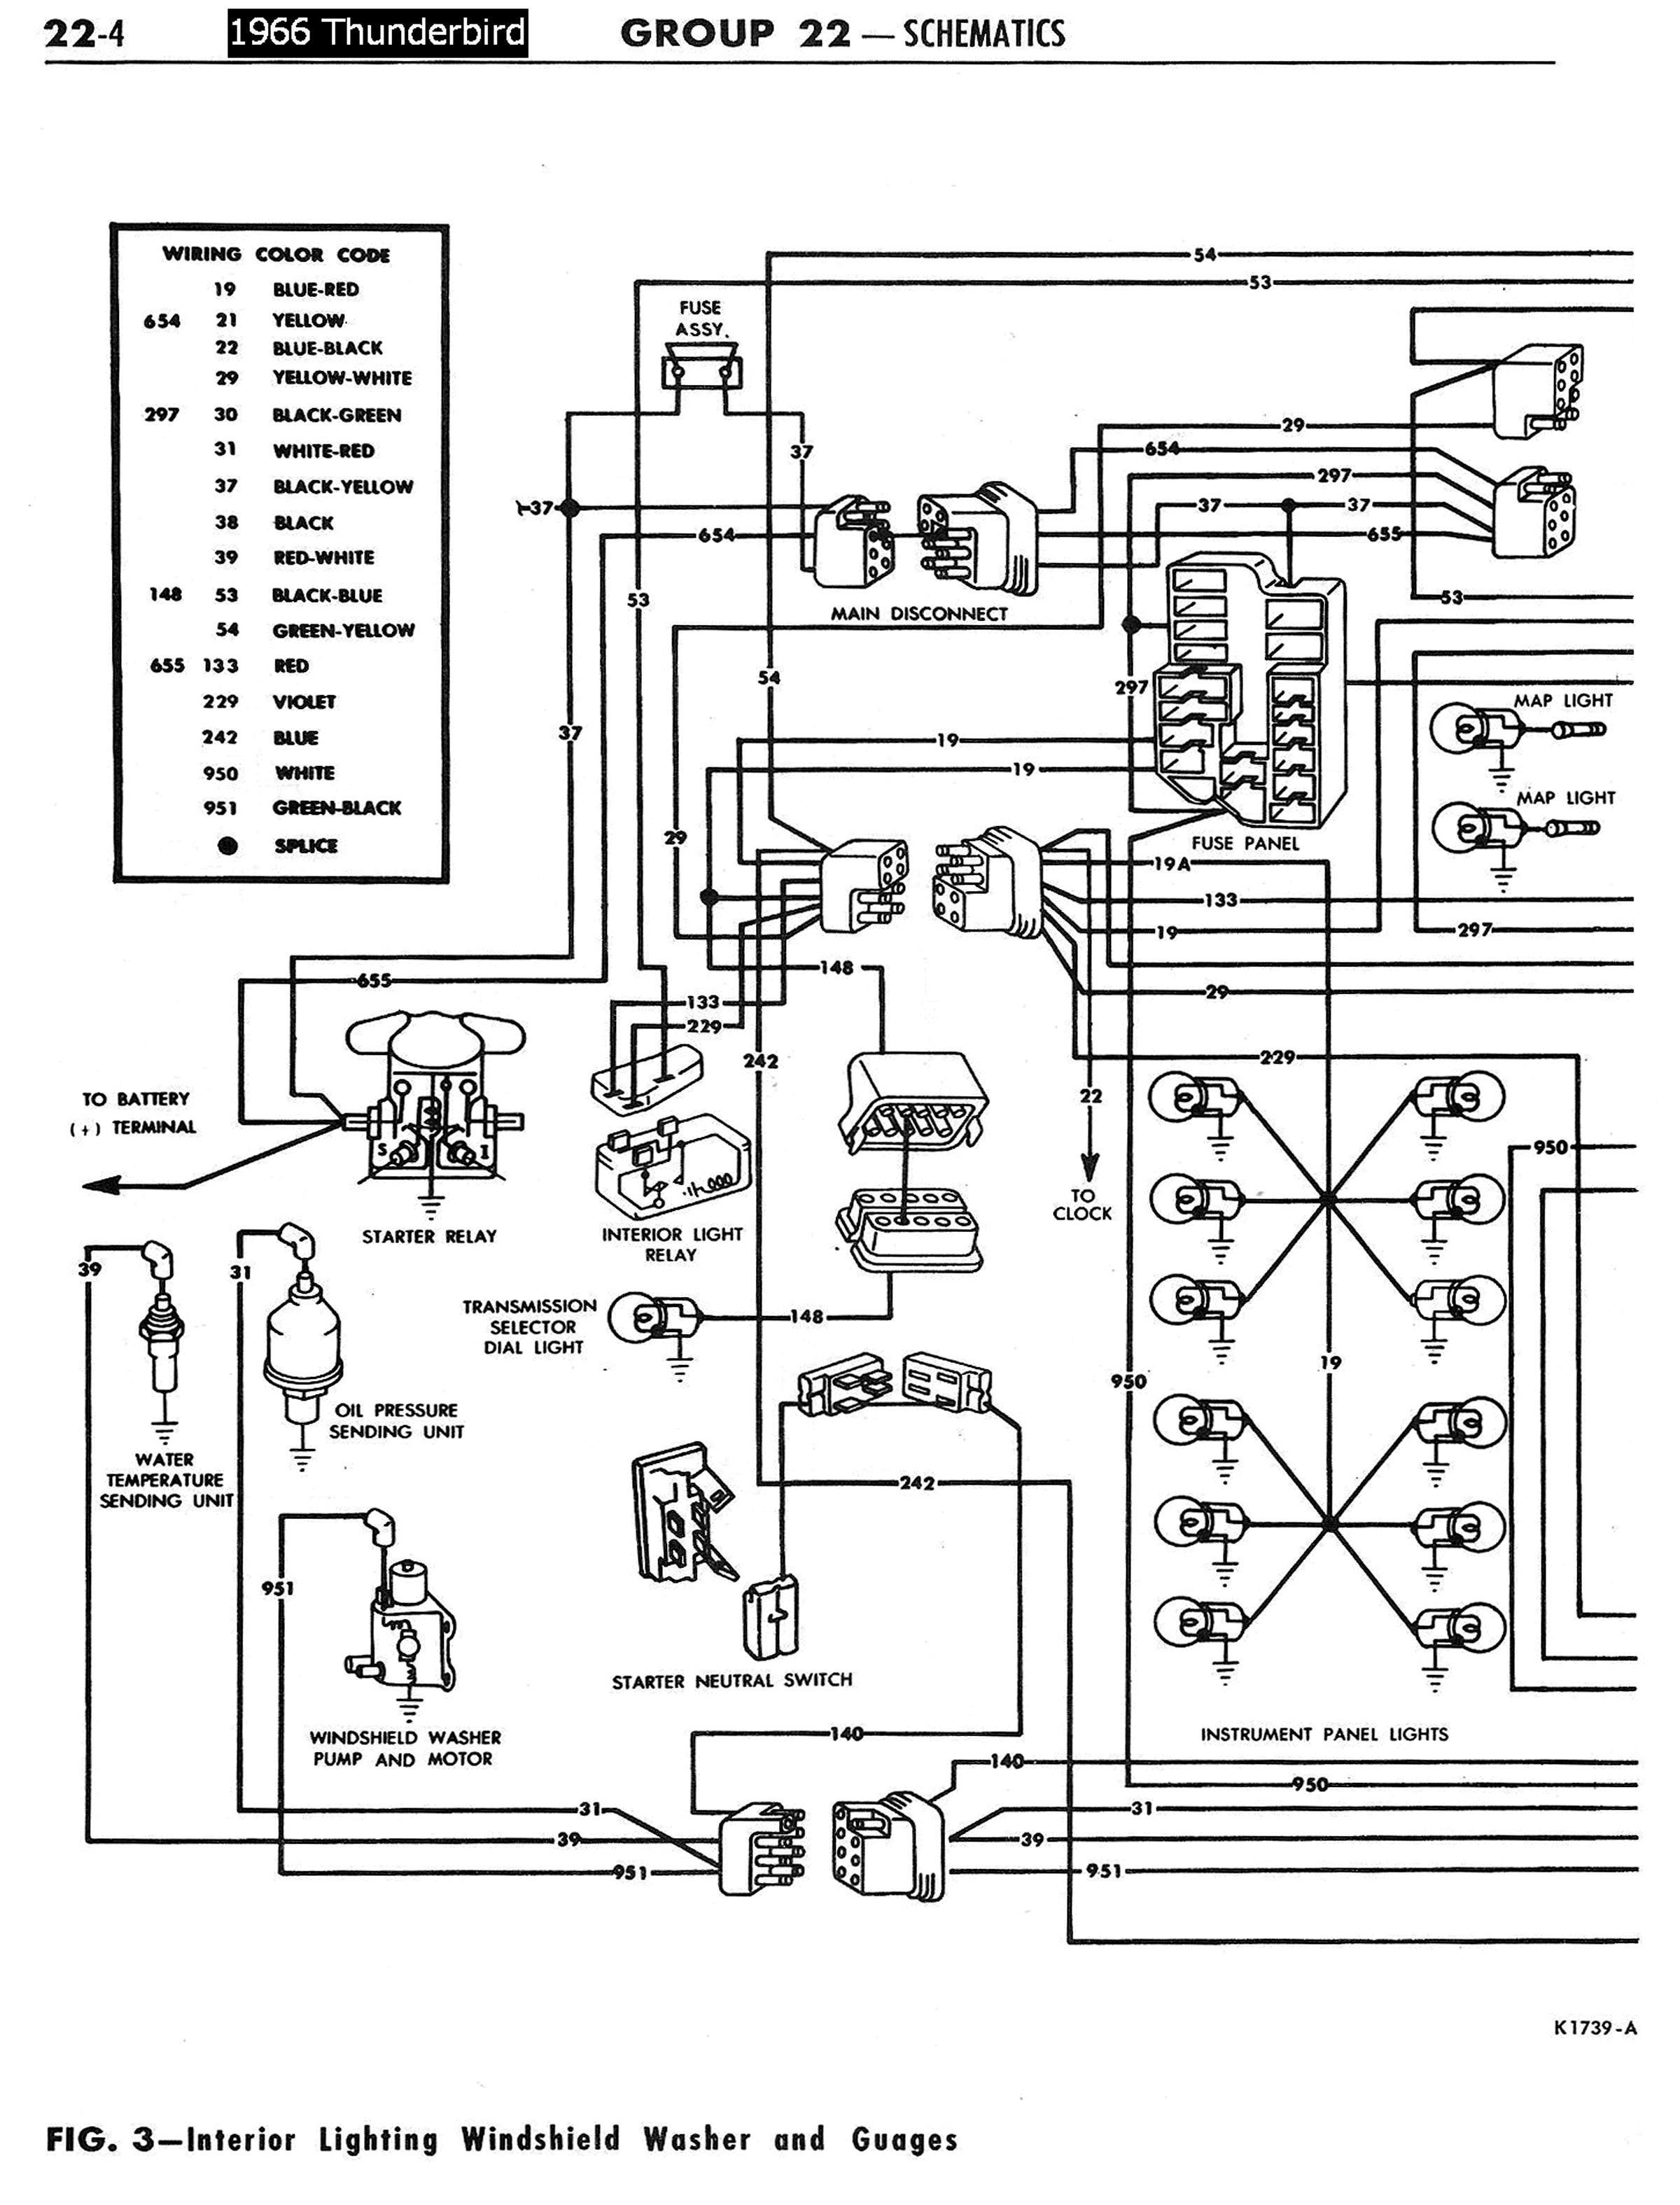 98 Thunderbird Wiring Diagram Great Design Of 92 Fuse Box 1965 Ford Turn Signal 1998 Sport Idle Speed Triumph Problems